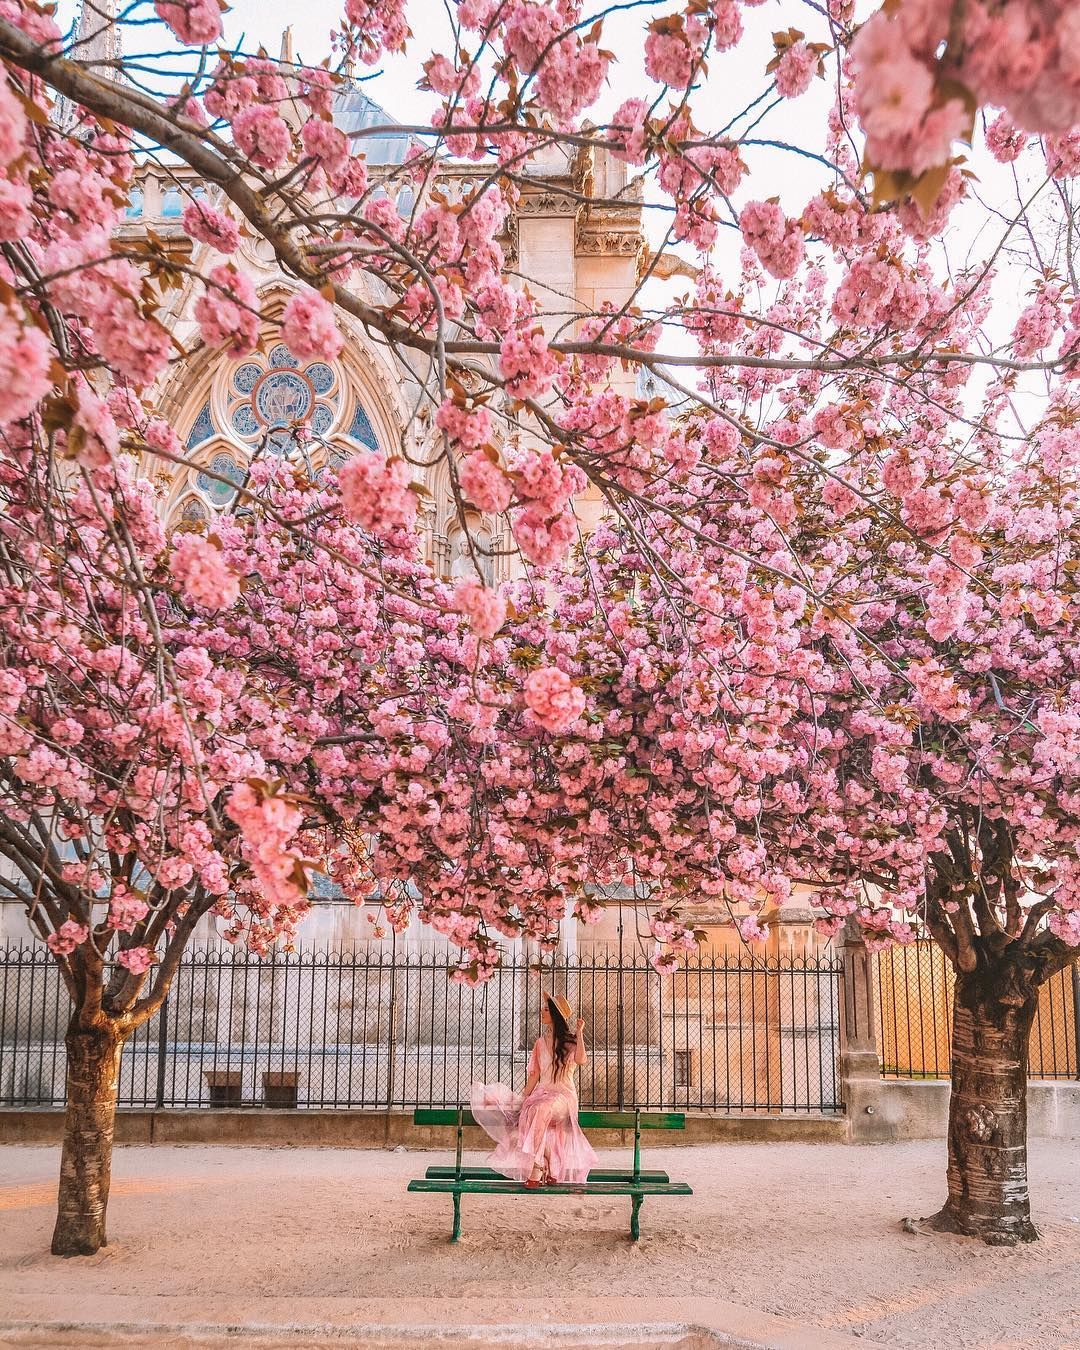 Nathalie Roch Nathalie Wanders Instagram Photos And Videos Travel Picture Ideas How To Take Photos Travel Photography